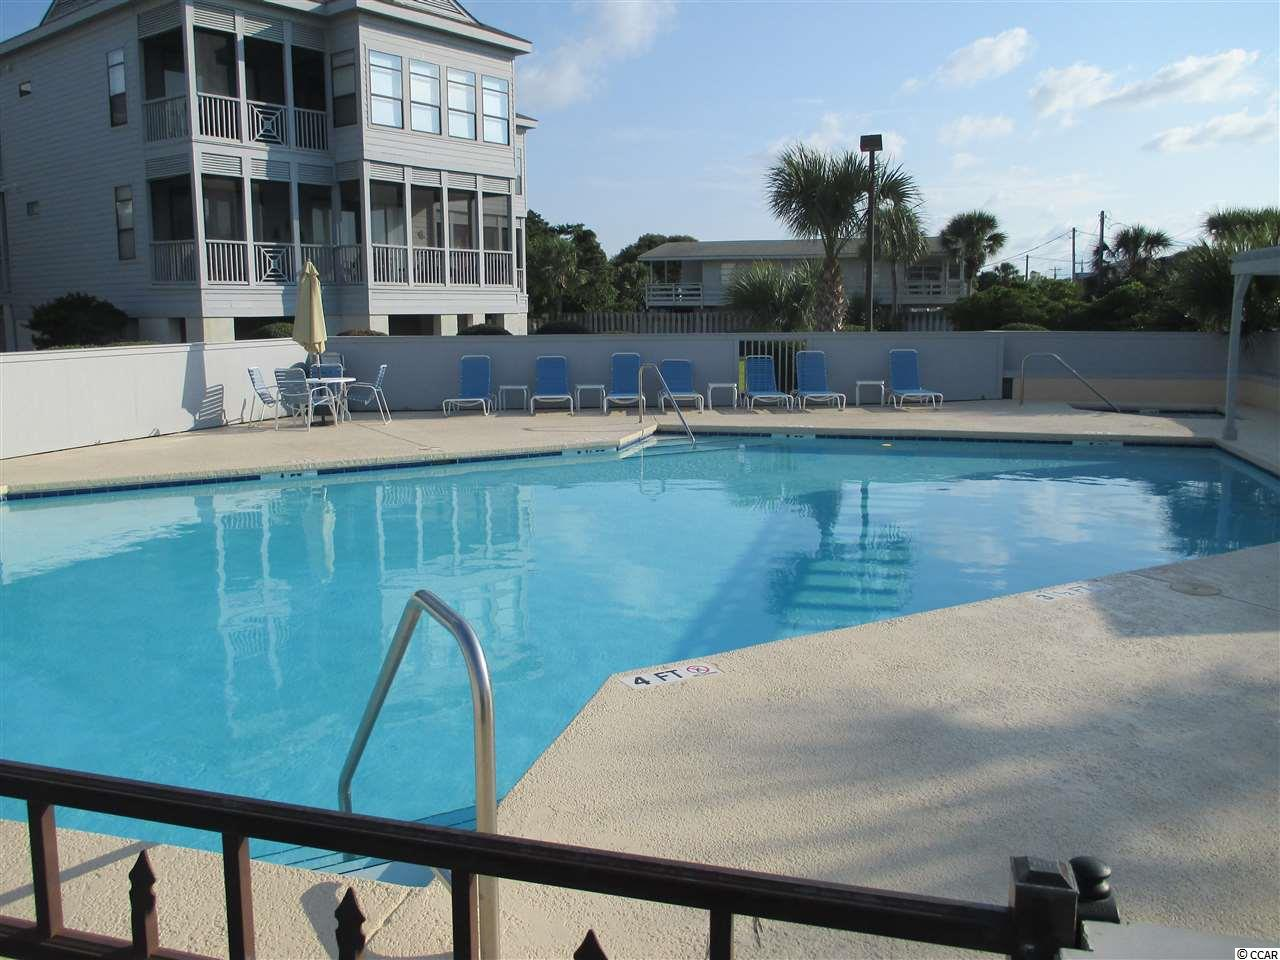 Contact your real estate agent to view this  Inlet Point Villas - Litchfield condo for sale